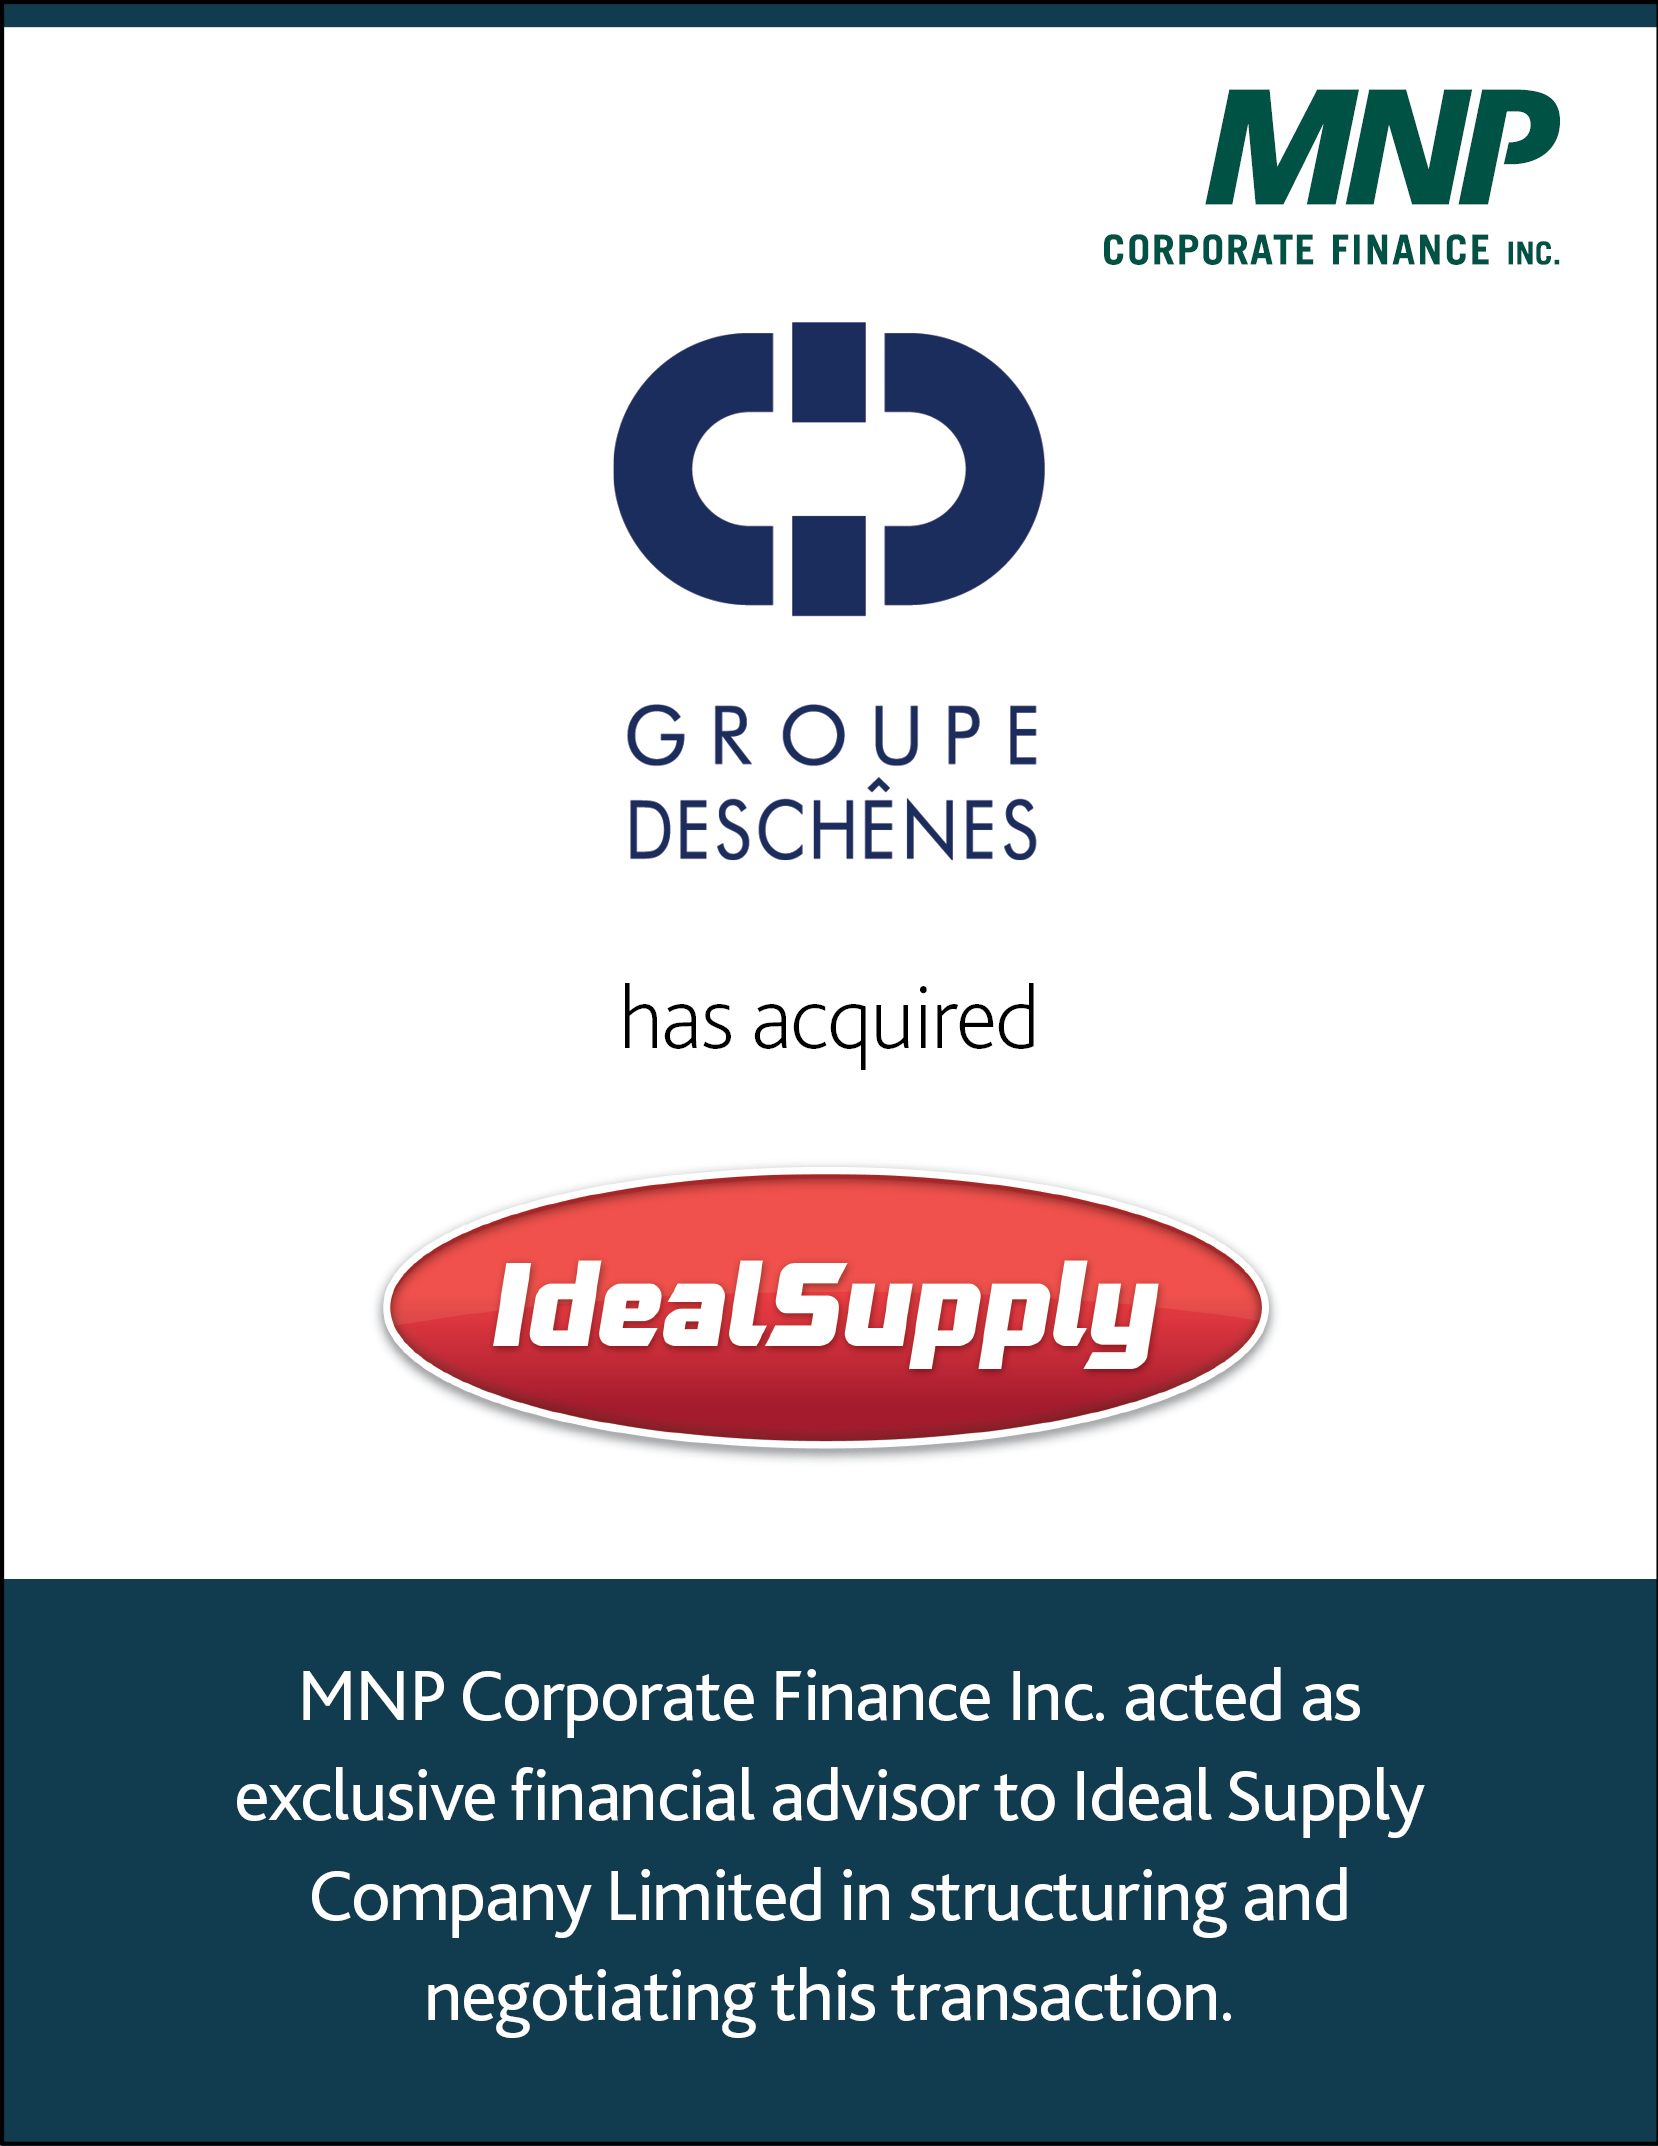 Groupe Deschenes has acquired IdealSupply. MNP Corporate Finance Inc. acted as exclusive financial advisor to Ideal Supple Company Limited in structuring and negotiating this transaction.